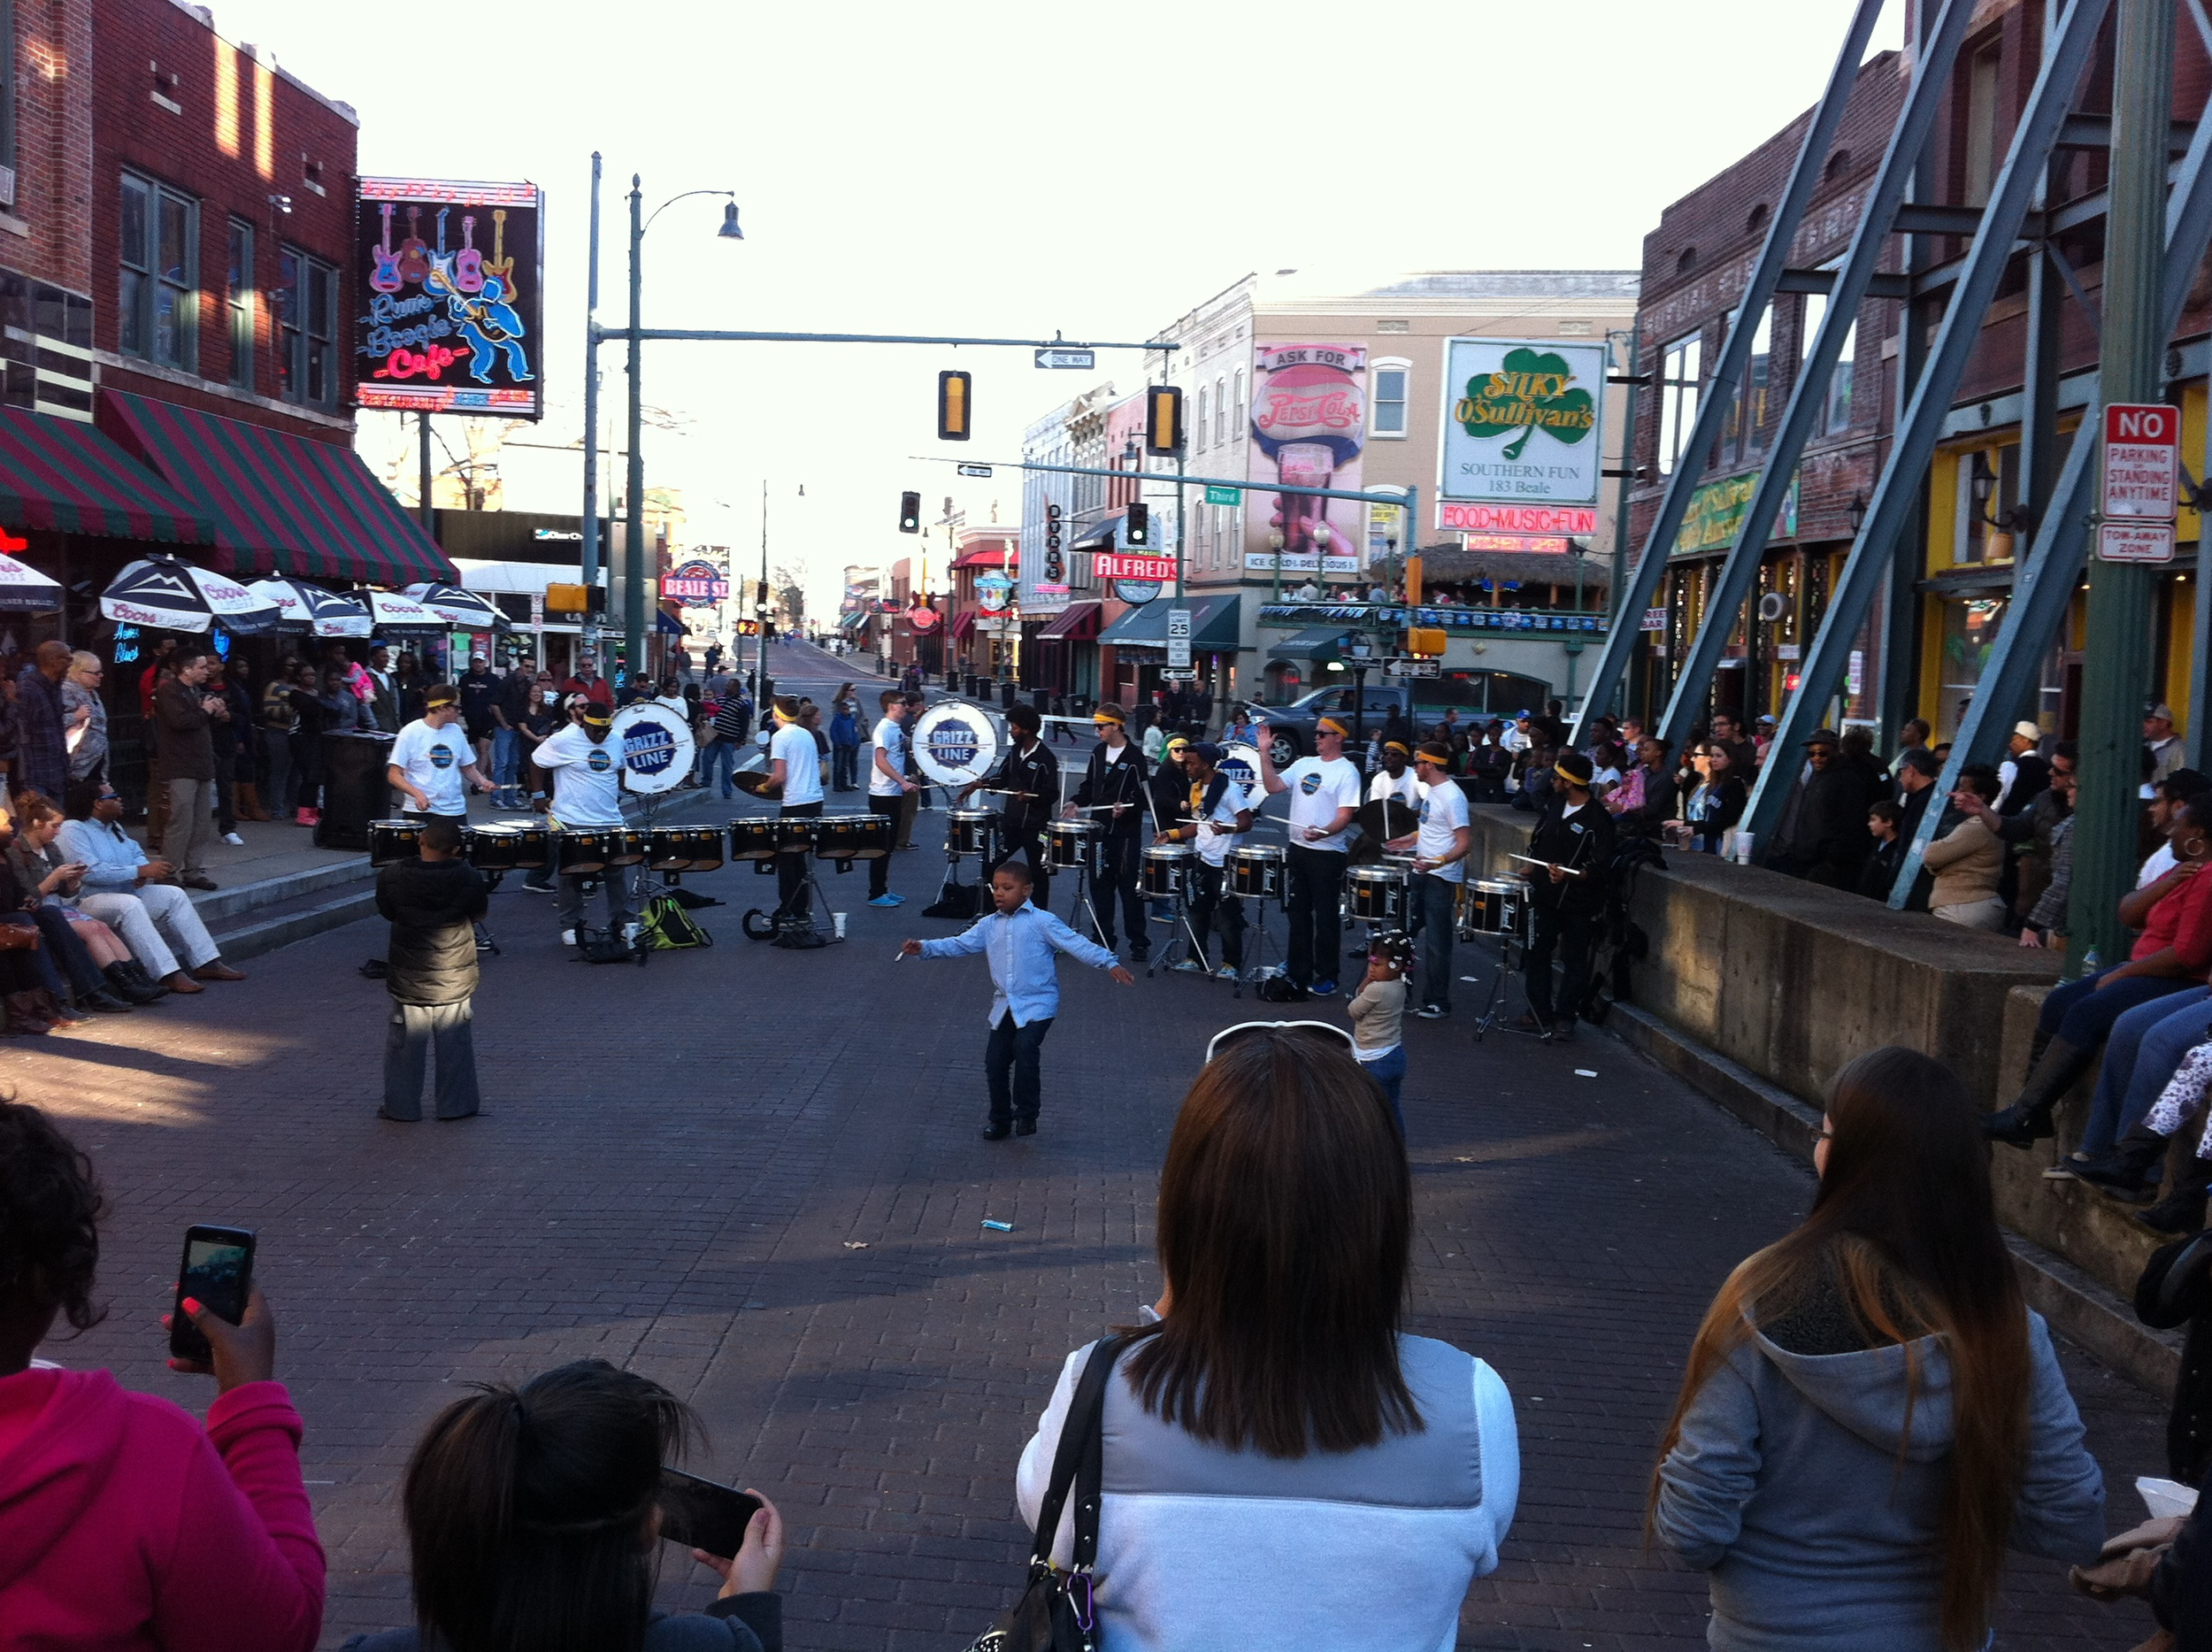 Beale Street is animated by buskers and bands who provide great street entertainment.